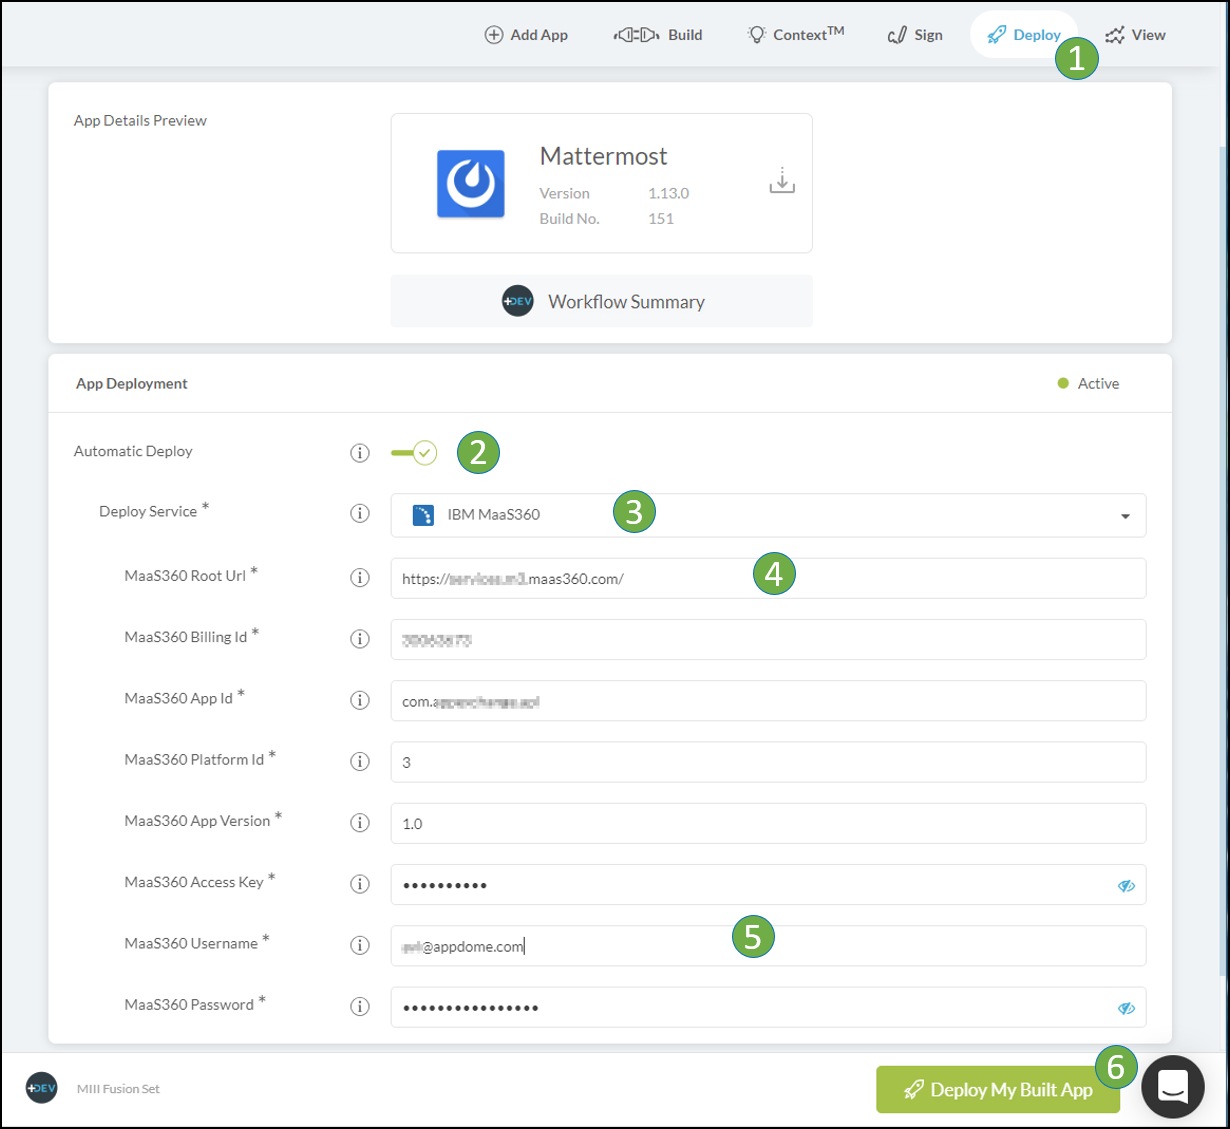 Configure Maas360 appstore autodeployment on appdome